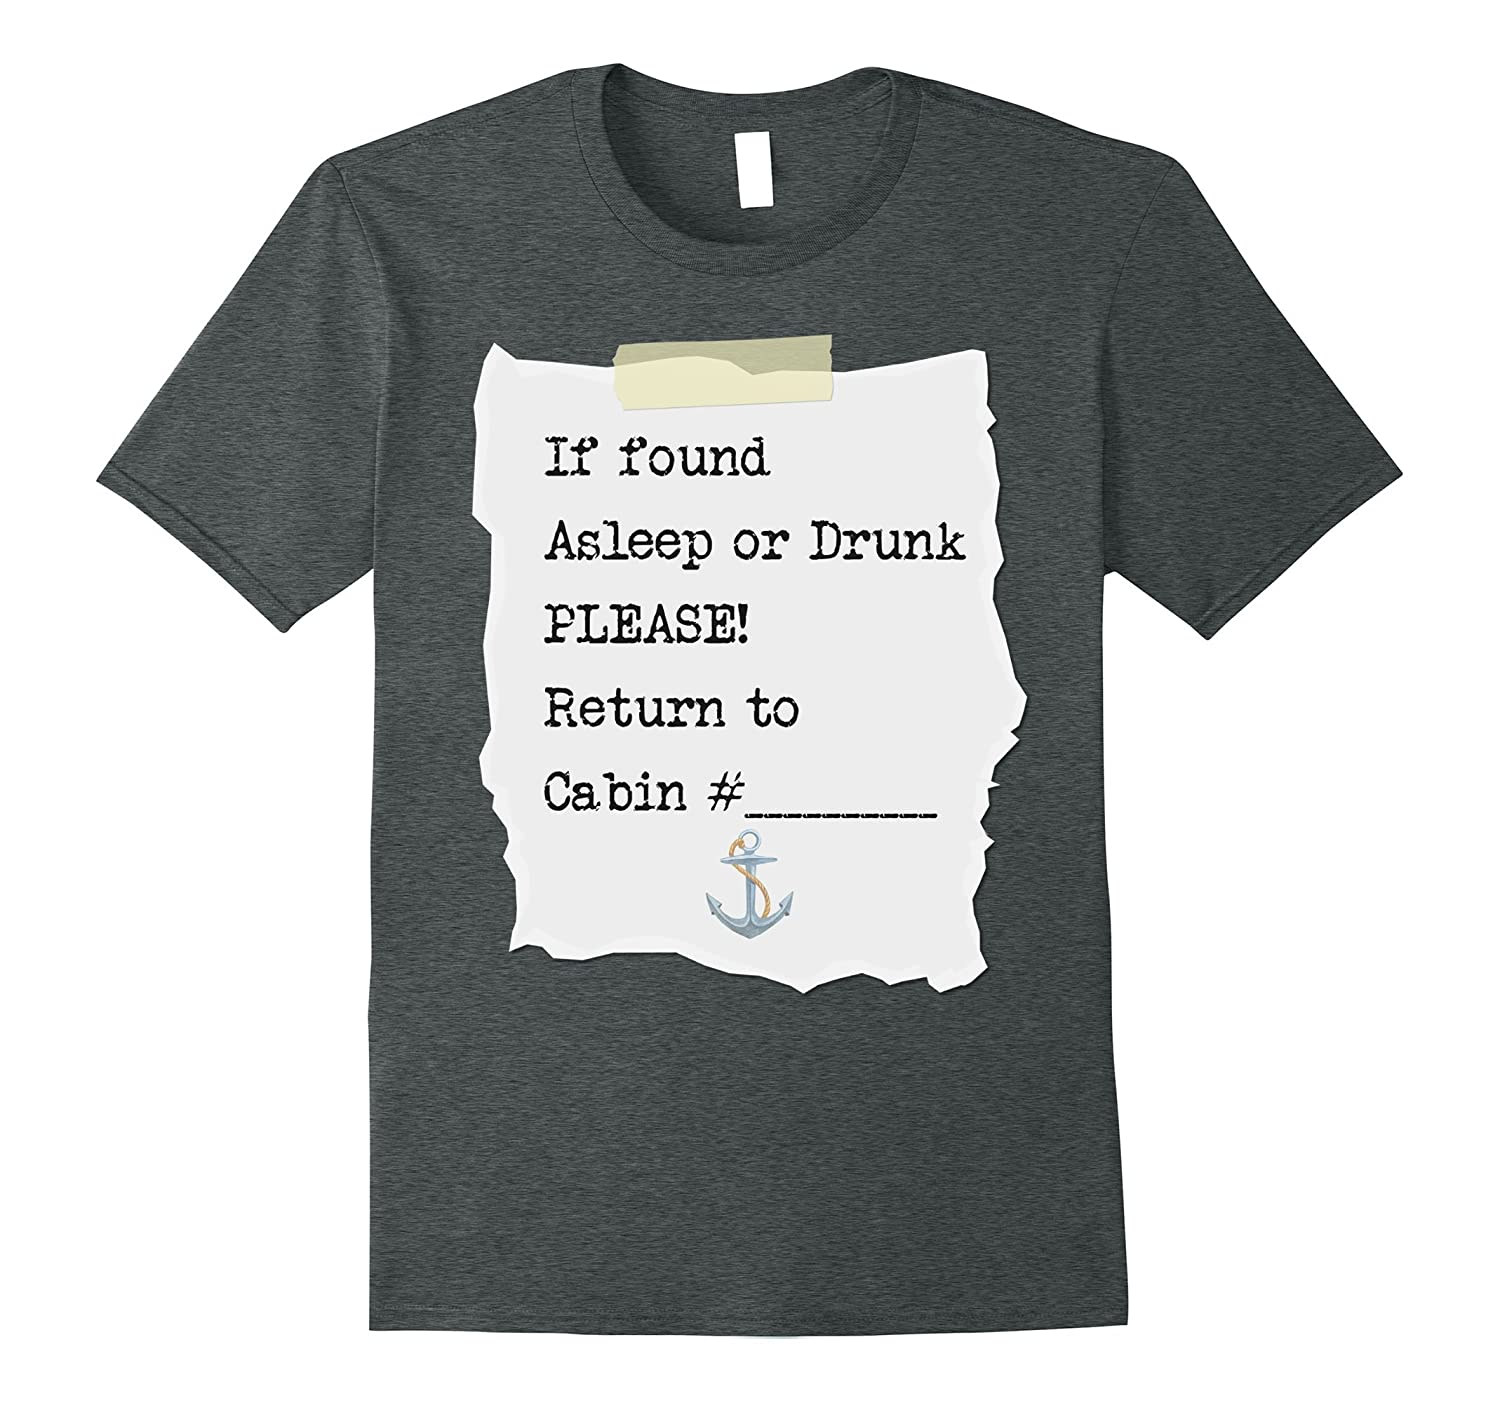 If found drunk please return to cabin - Funny cruise t-shirt-T-Shirt